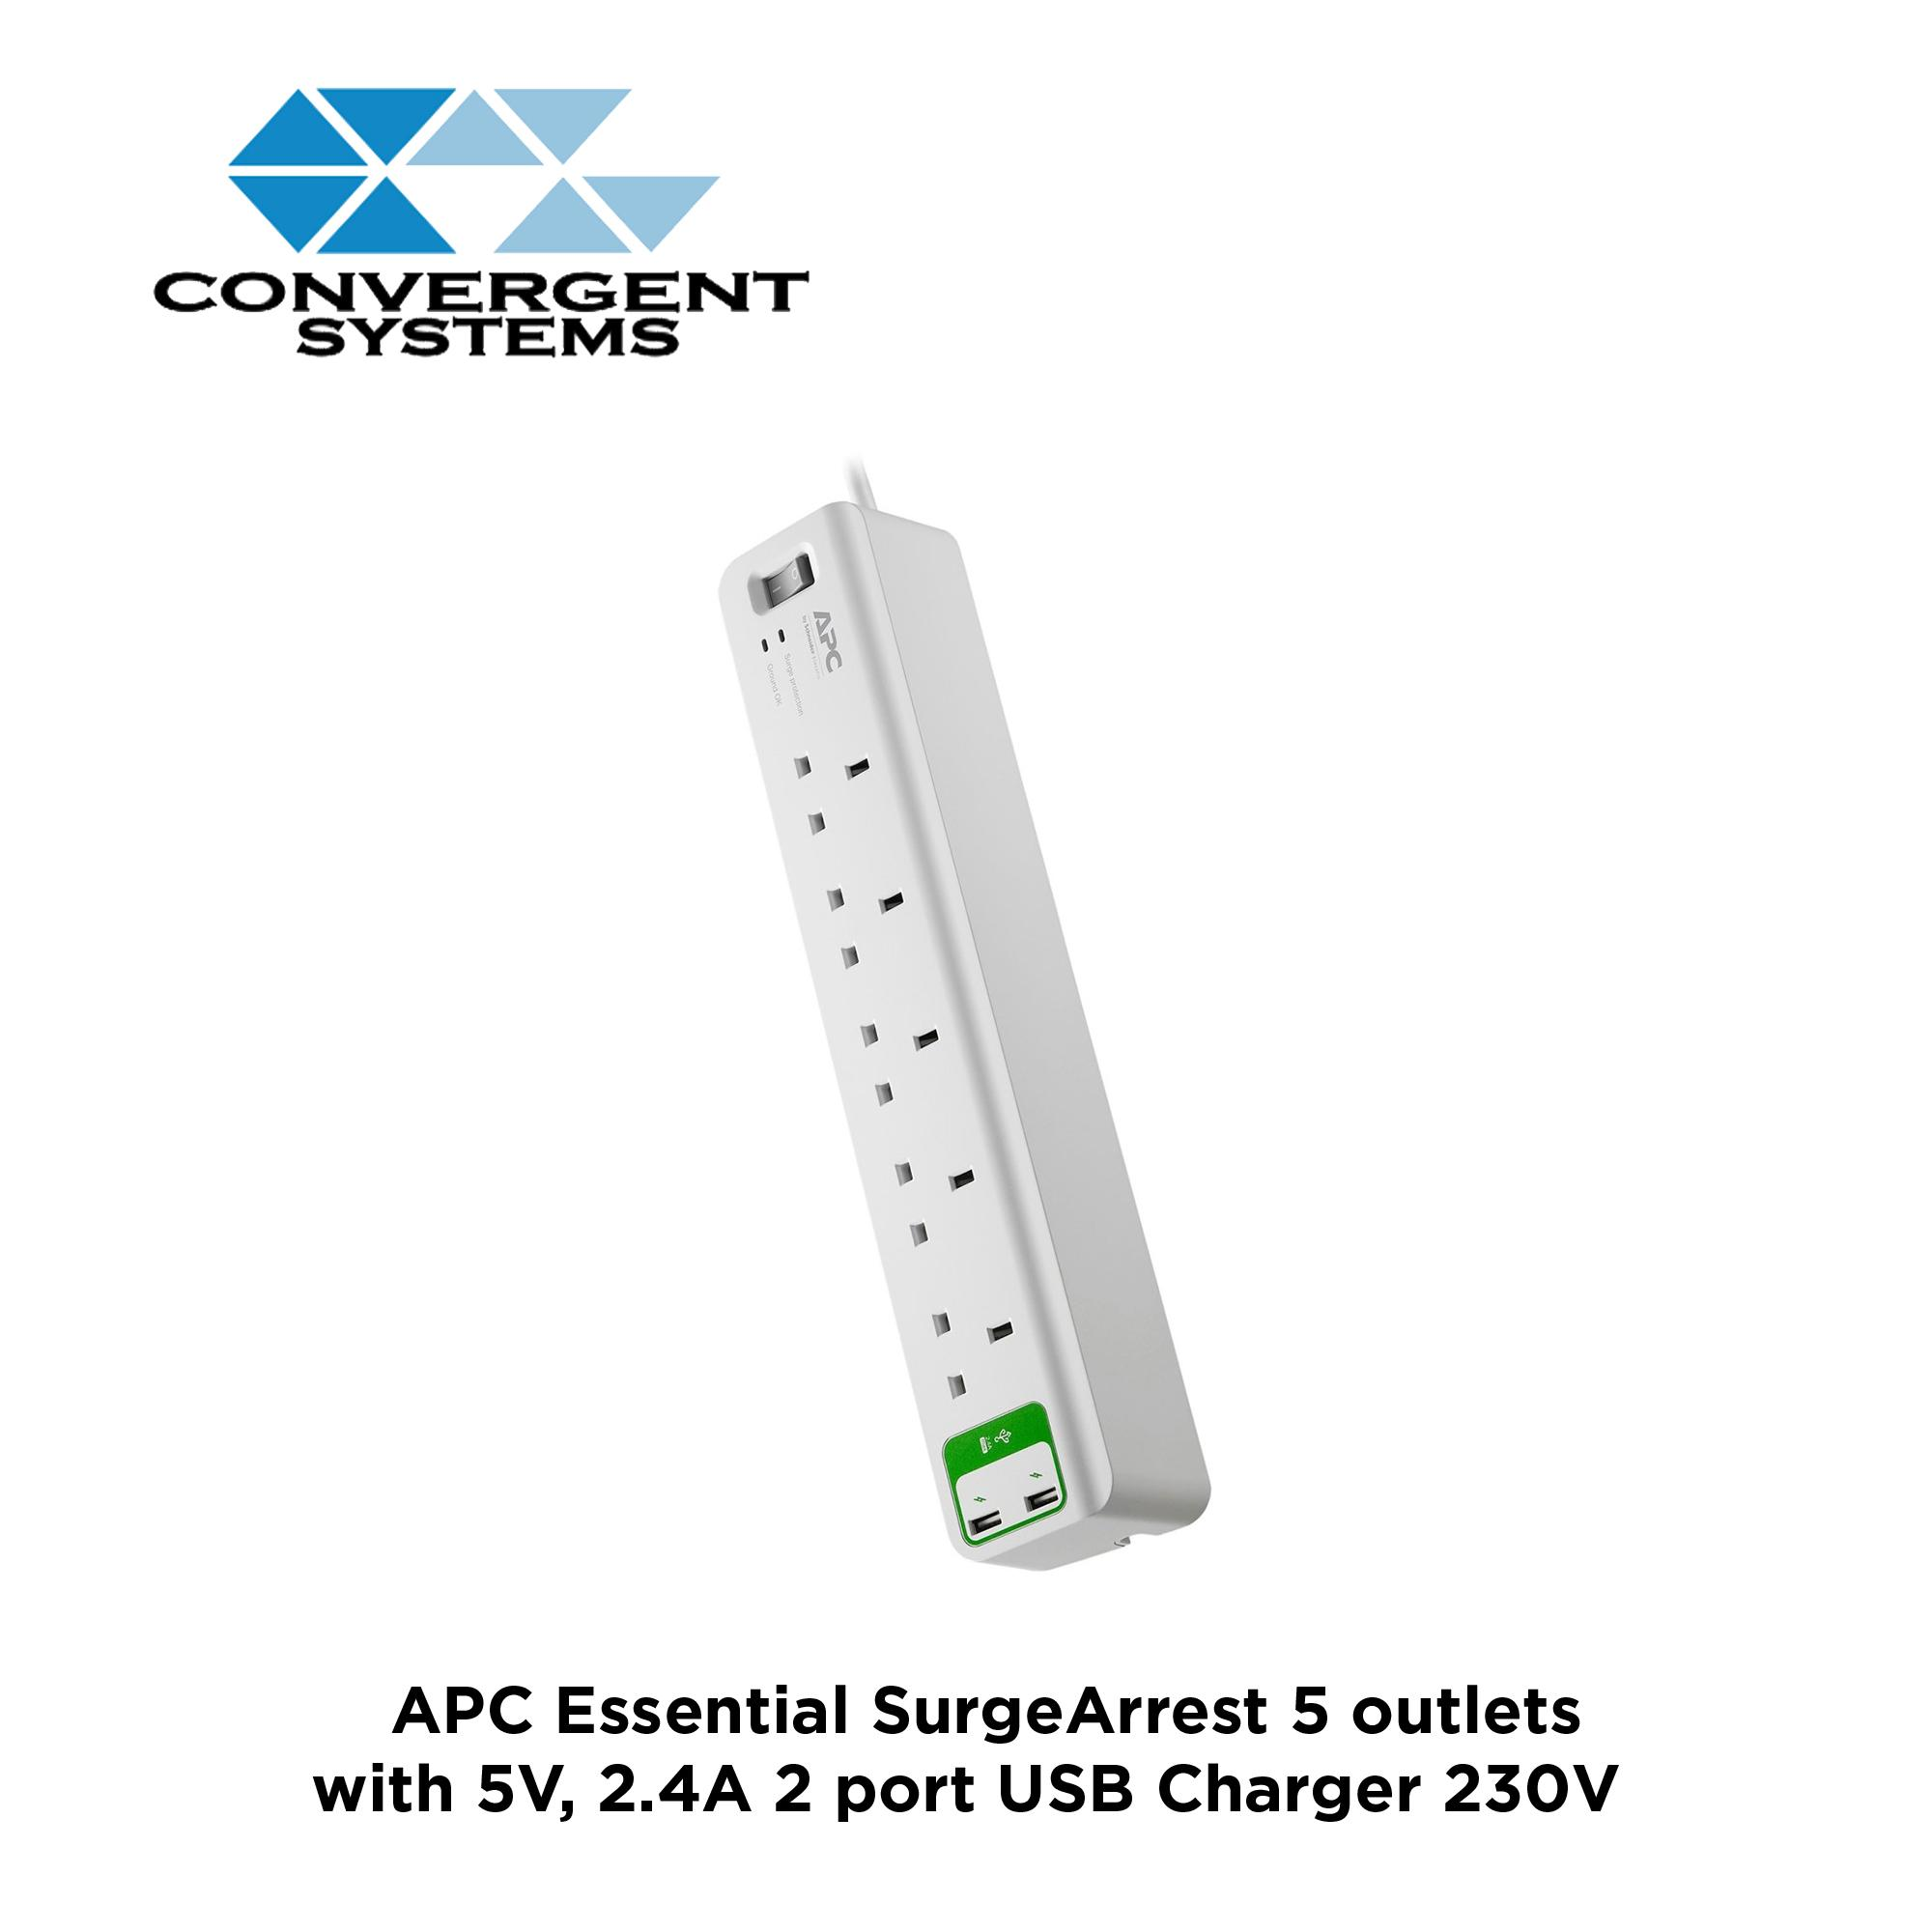 APC Essential SurgeArrest 5 outlets with 5V, 2.4A 2 port USB Charger 230V UK